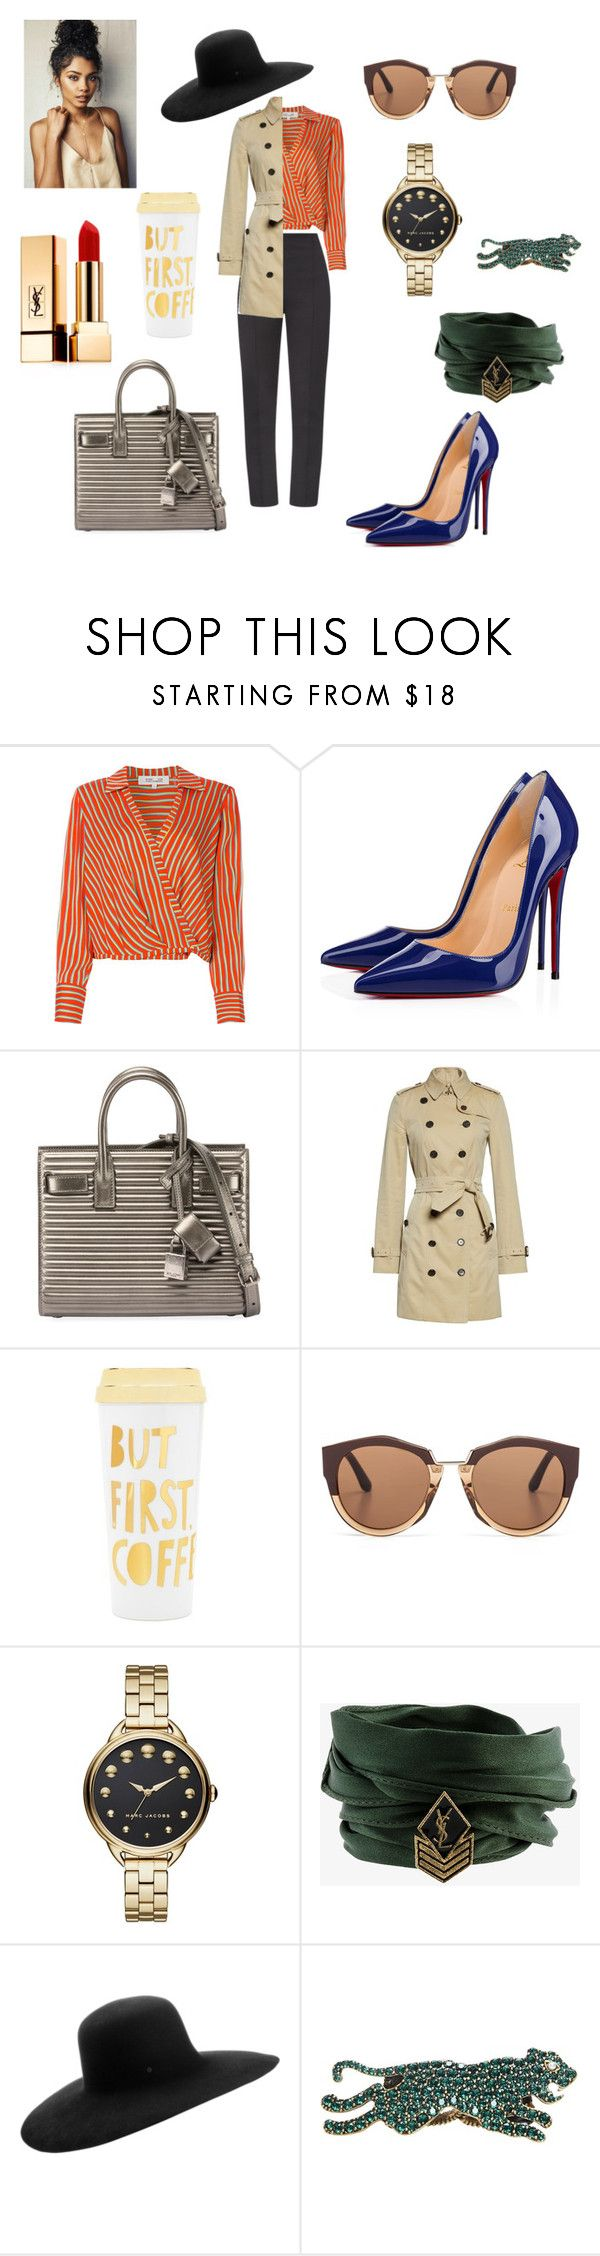 """""""Untitled #341"""" by gloriatovizi on Polyvore featuring Maticevski, Diane Von Furstenberg, Christian Louboutin, Yves Saint Laurent, Burberry, ban.do, Marni, Marc Jacobs, Maison Michel and Gucci"""